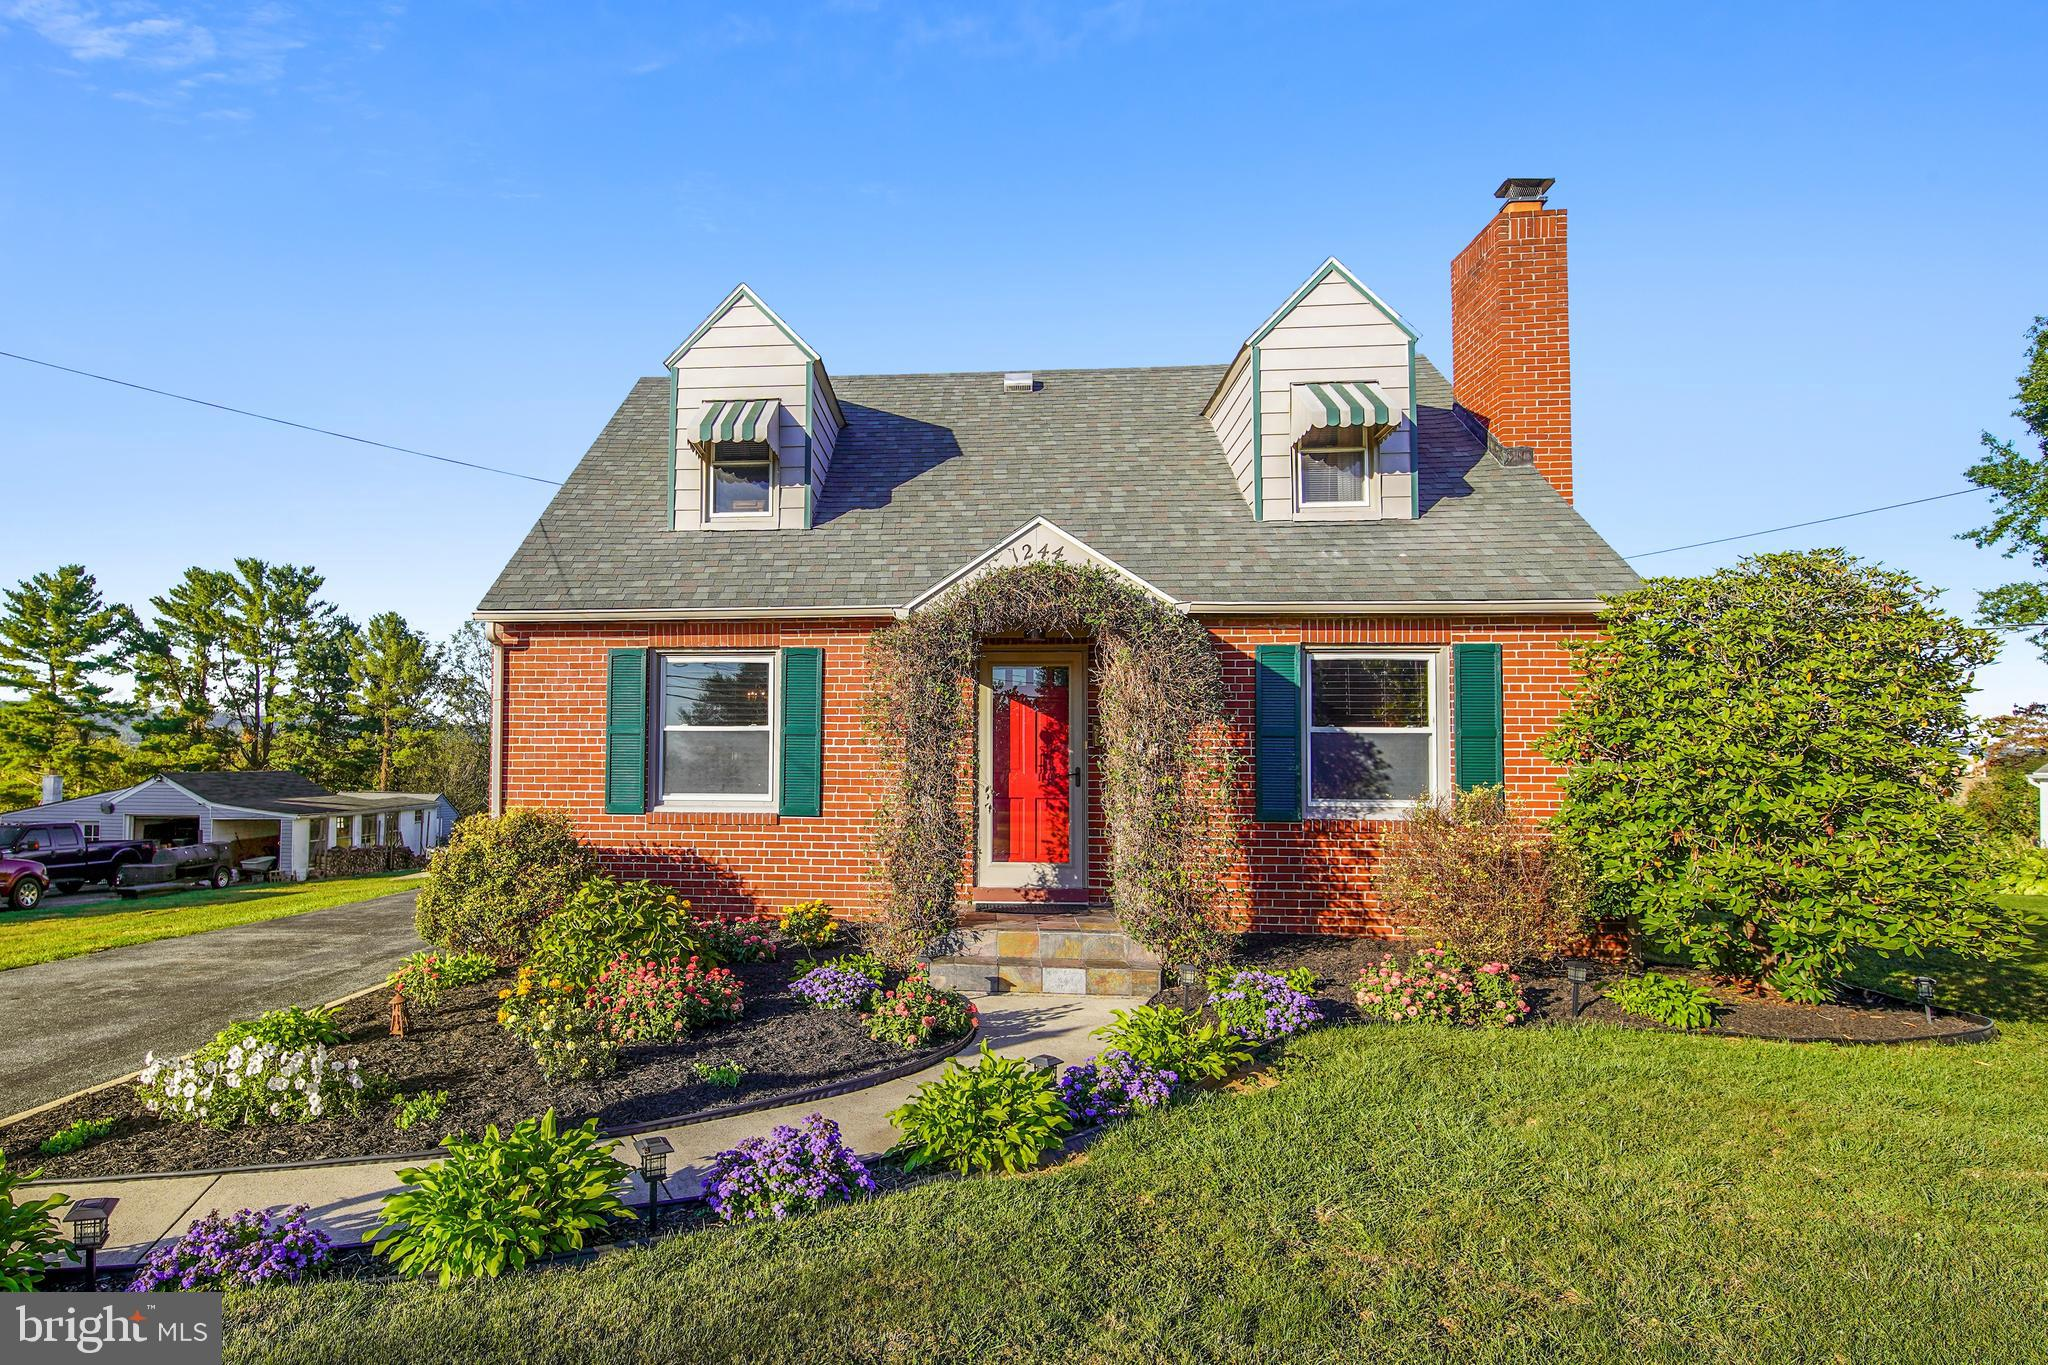 1244 ROSEMONT DRIVE, KNOXVILLE, MD 21758